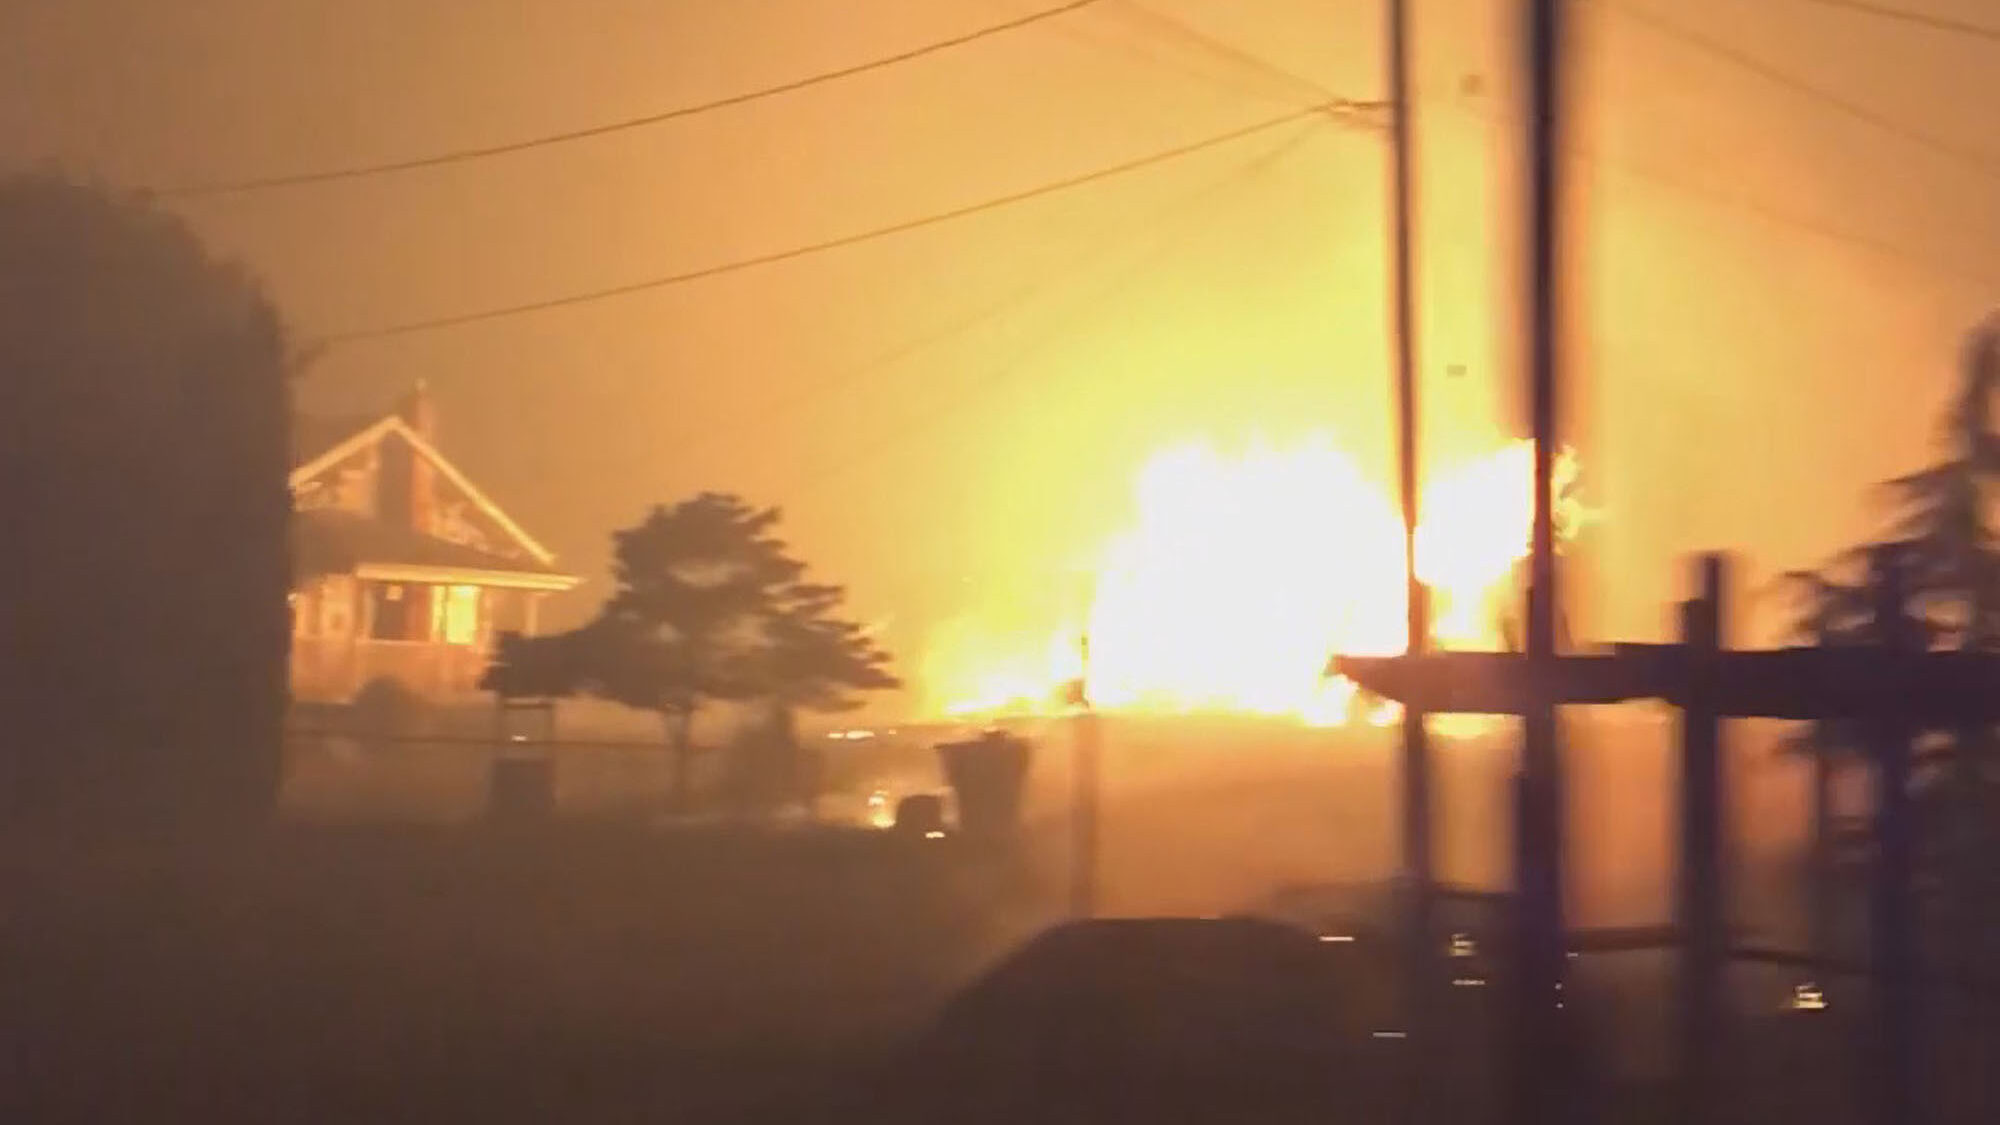 VIDEO: Wildfire Destroys Oregon Homes in Apocalyptic Blaze